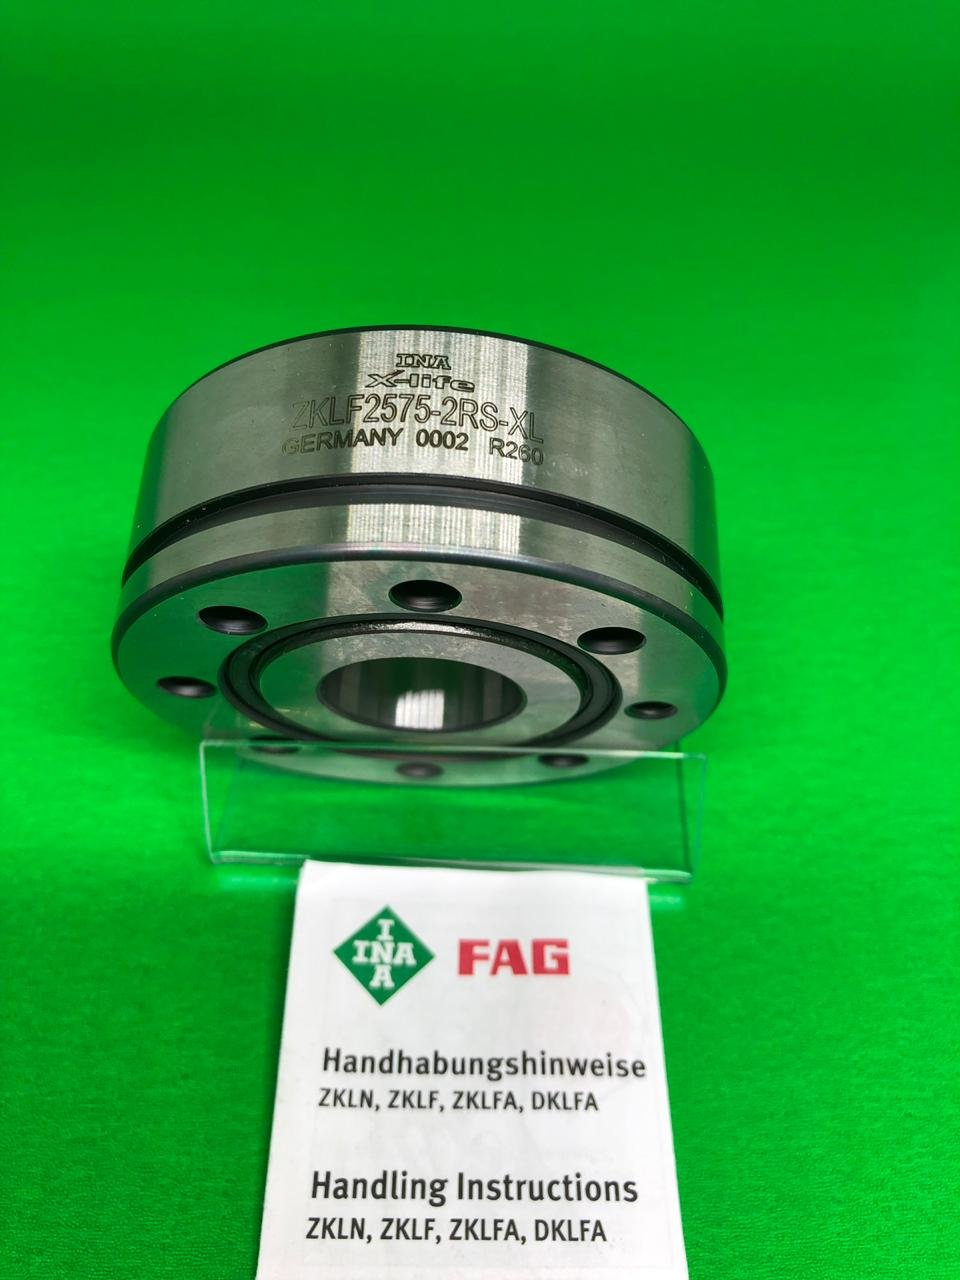 ZKLF2575-2RS-XL -Rolamento para fusos - medias INA-FAG-SCHAEFFLER - distribuidor FAG-INA- ball screw bearings INA - super precision bearings - medias INA